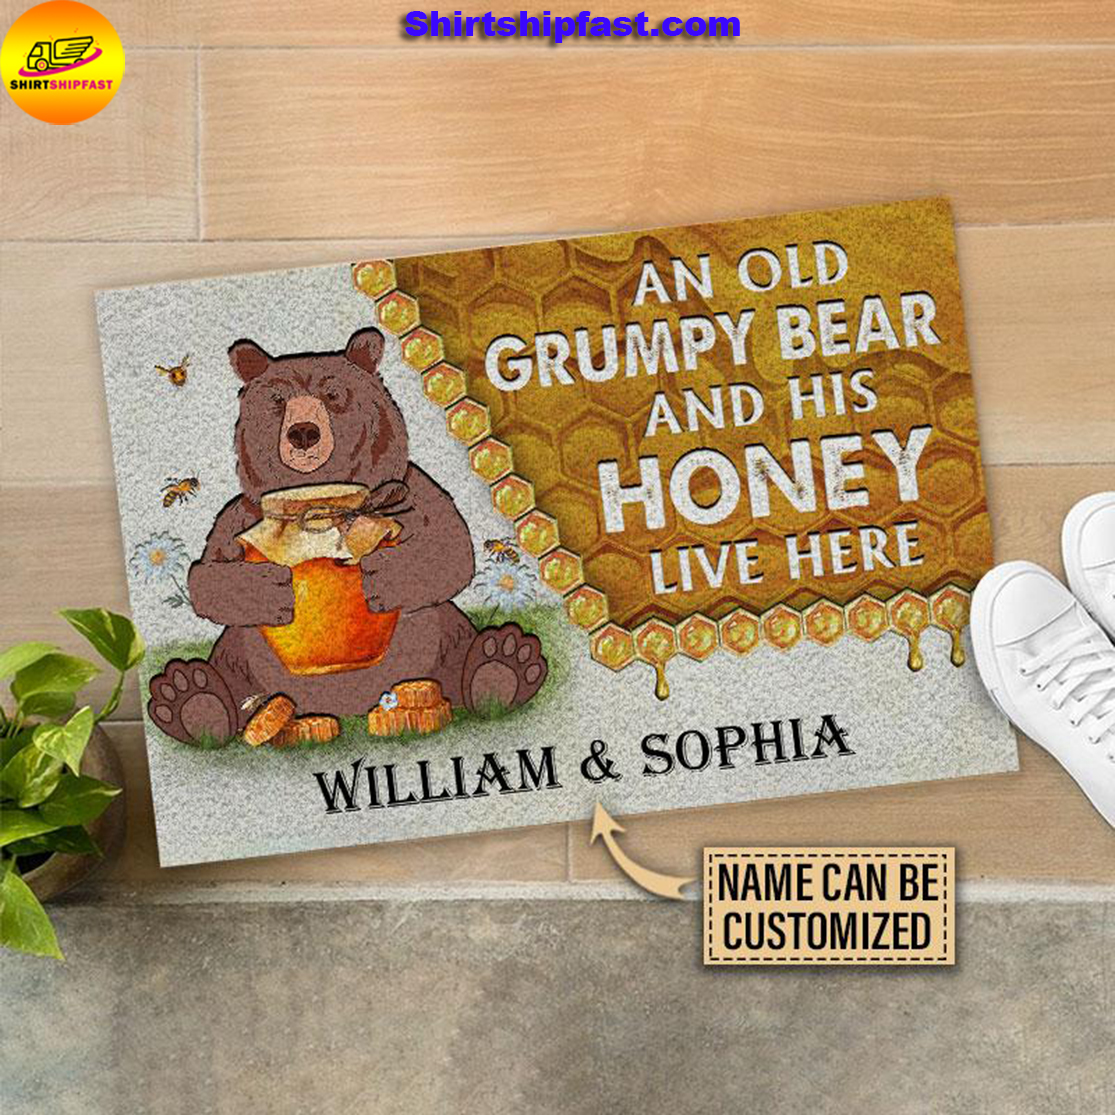 Personalized Bear and his honey bee live here customized doormat - Picture 2